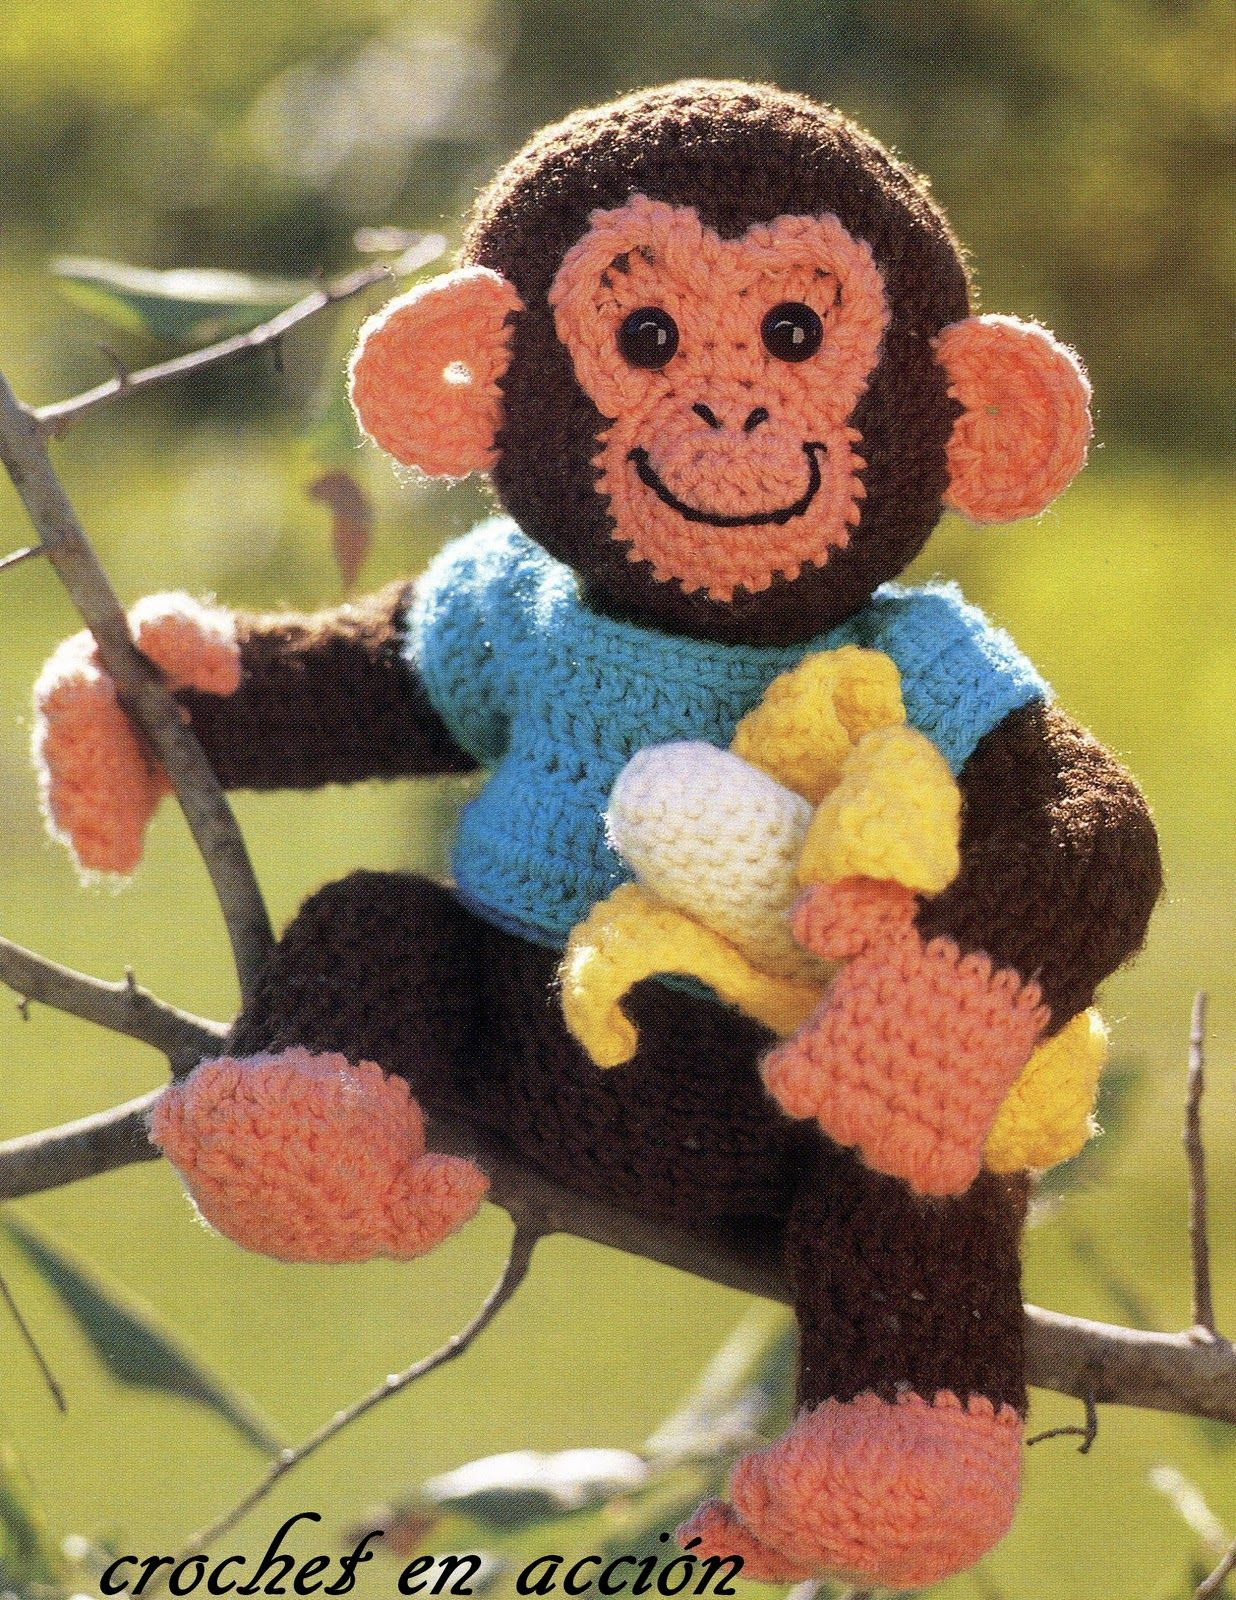 Make It: Crochet Chimp - Free Pattern (Site is in Spanish but the pattern is in English!) #crochet #amigurumi